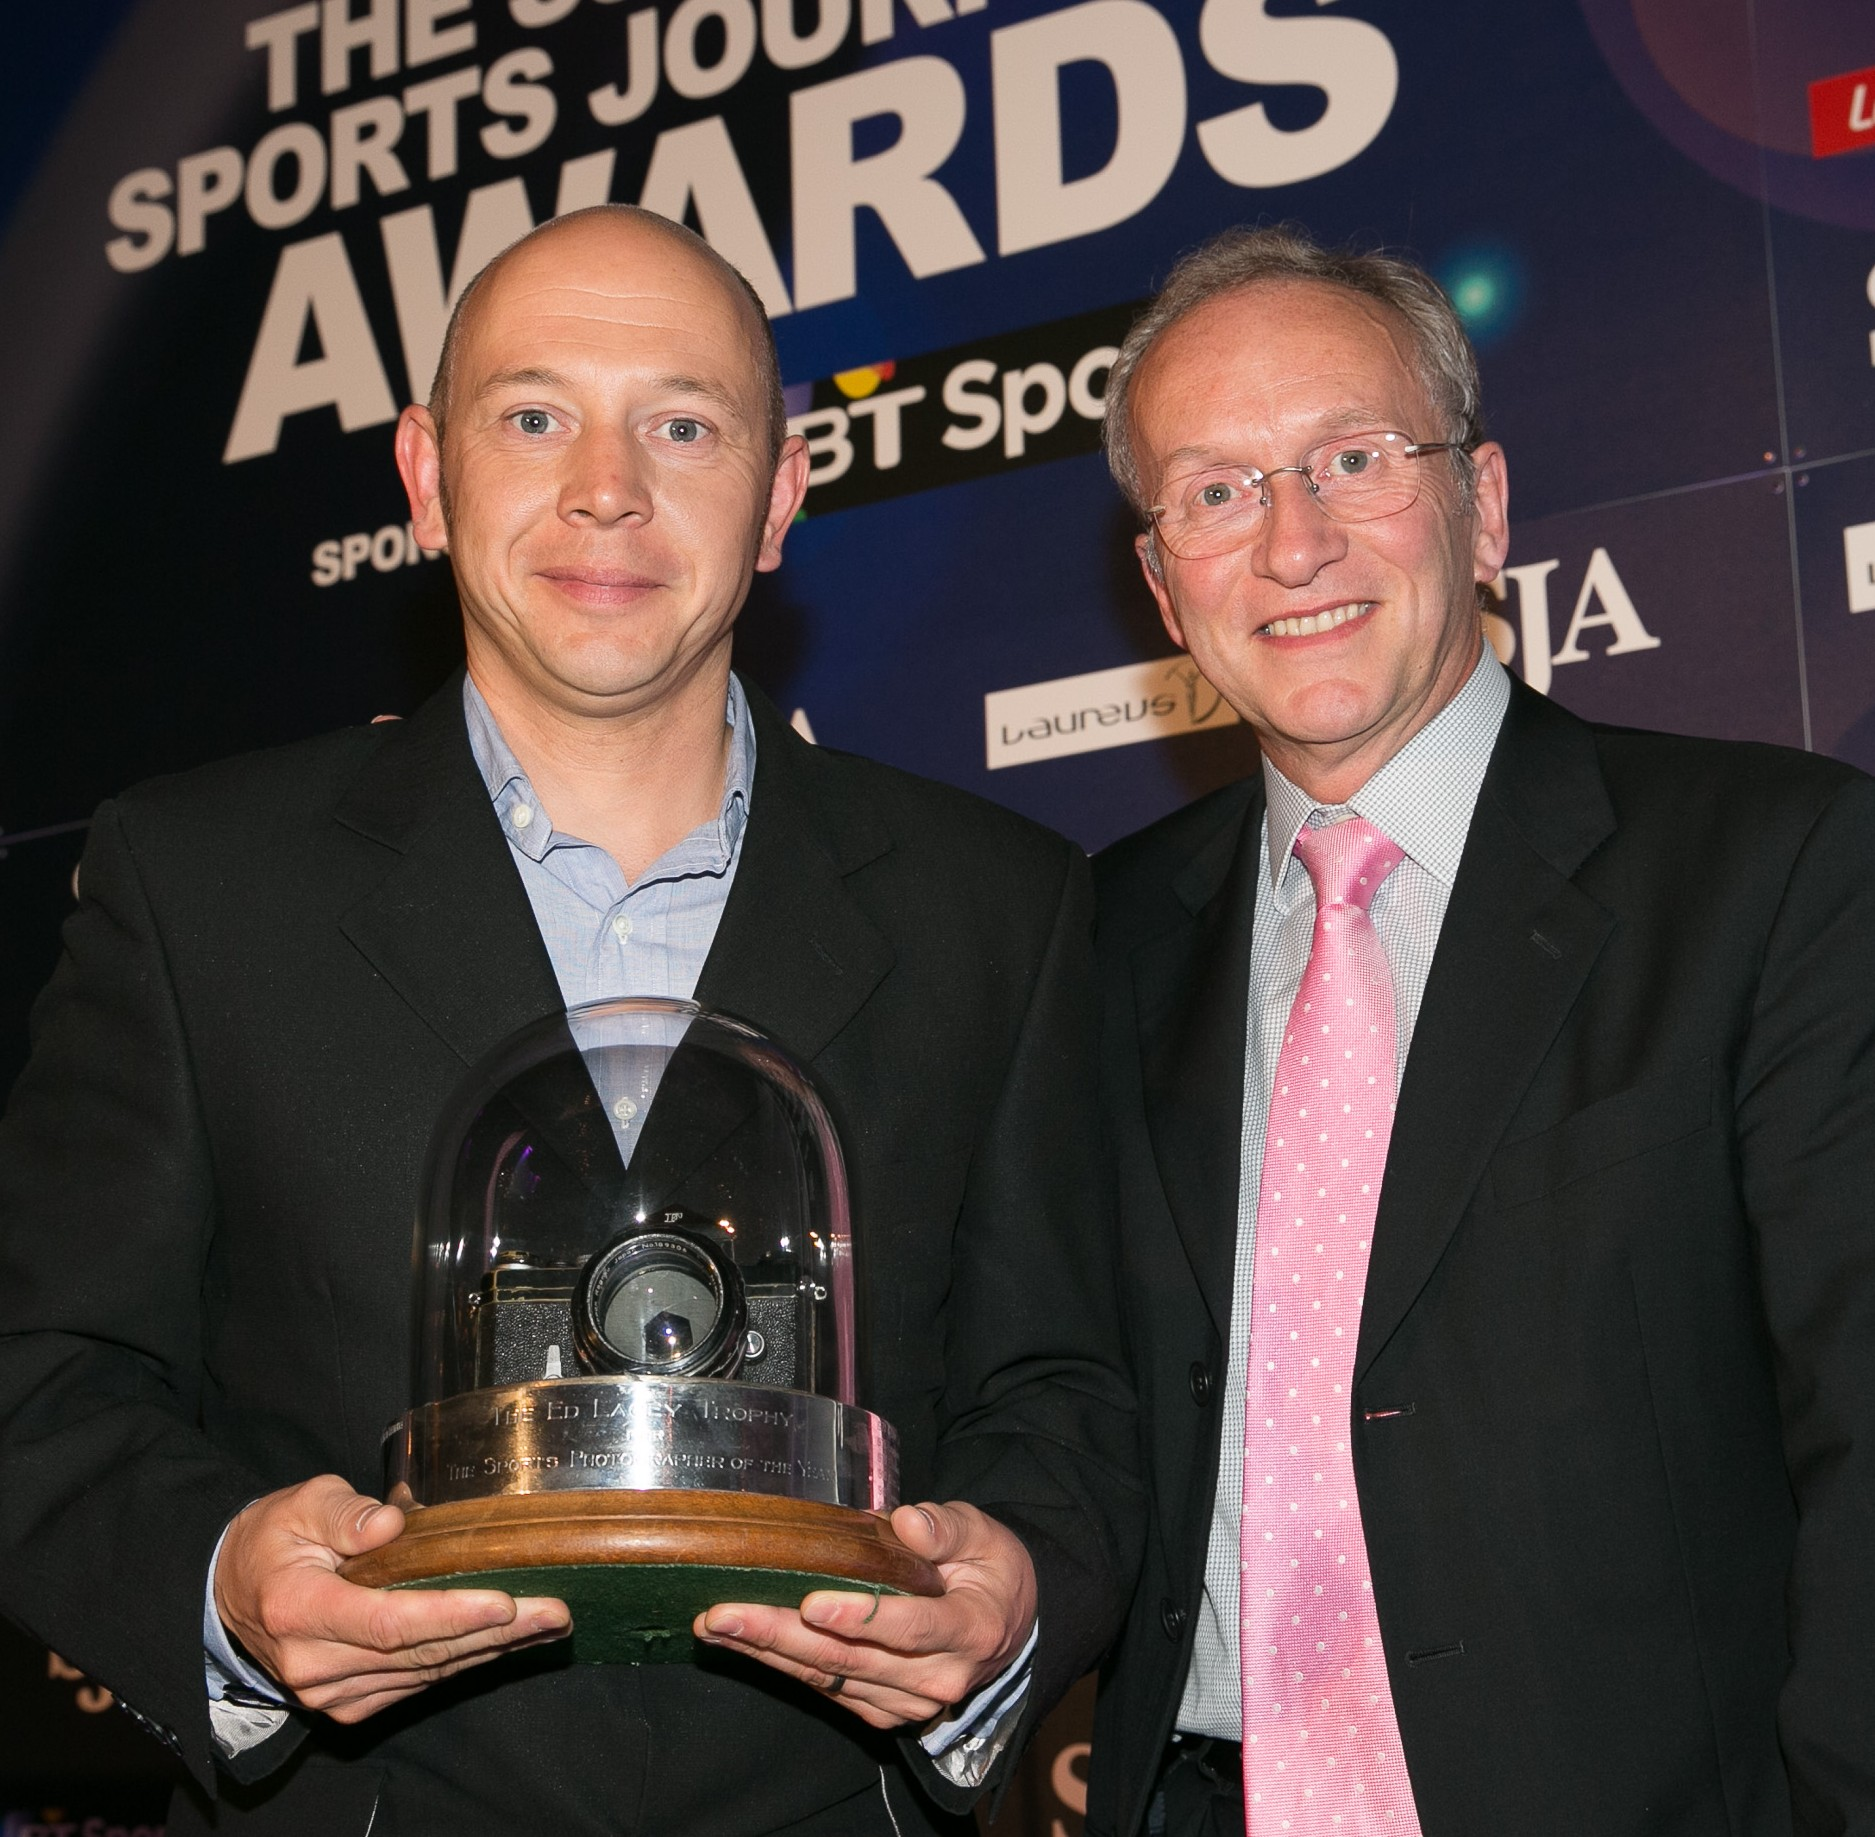 Bryn Lennon accepting the trophy as 2013 British Sports Photographer of the Year from the SJA chairman, David Walker